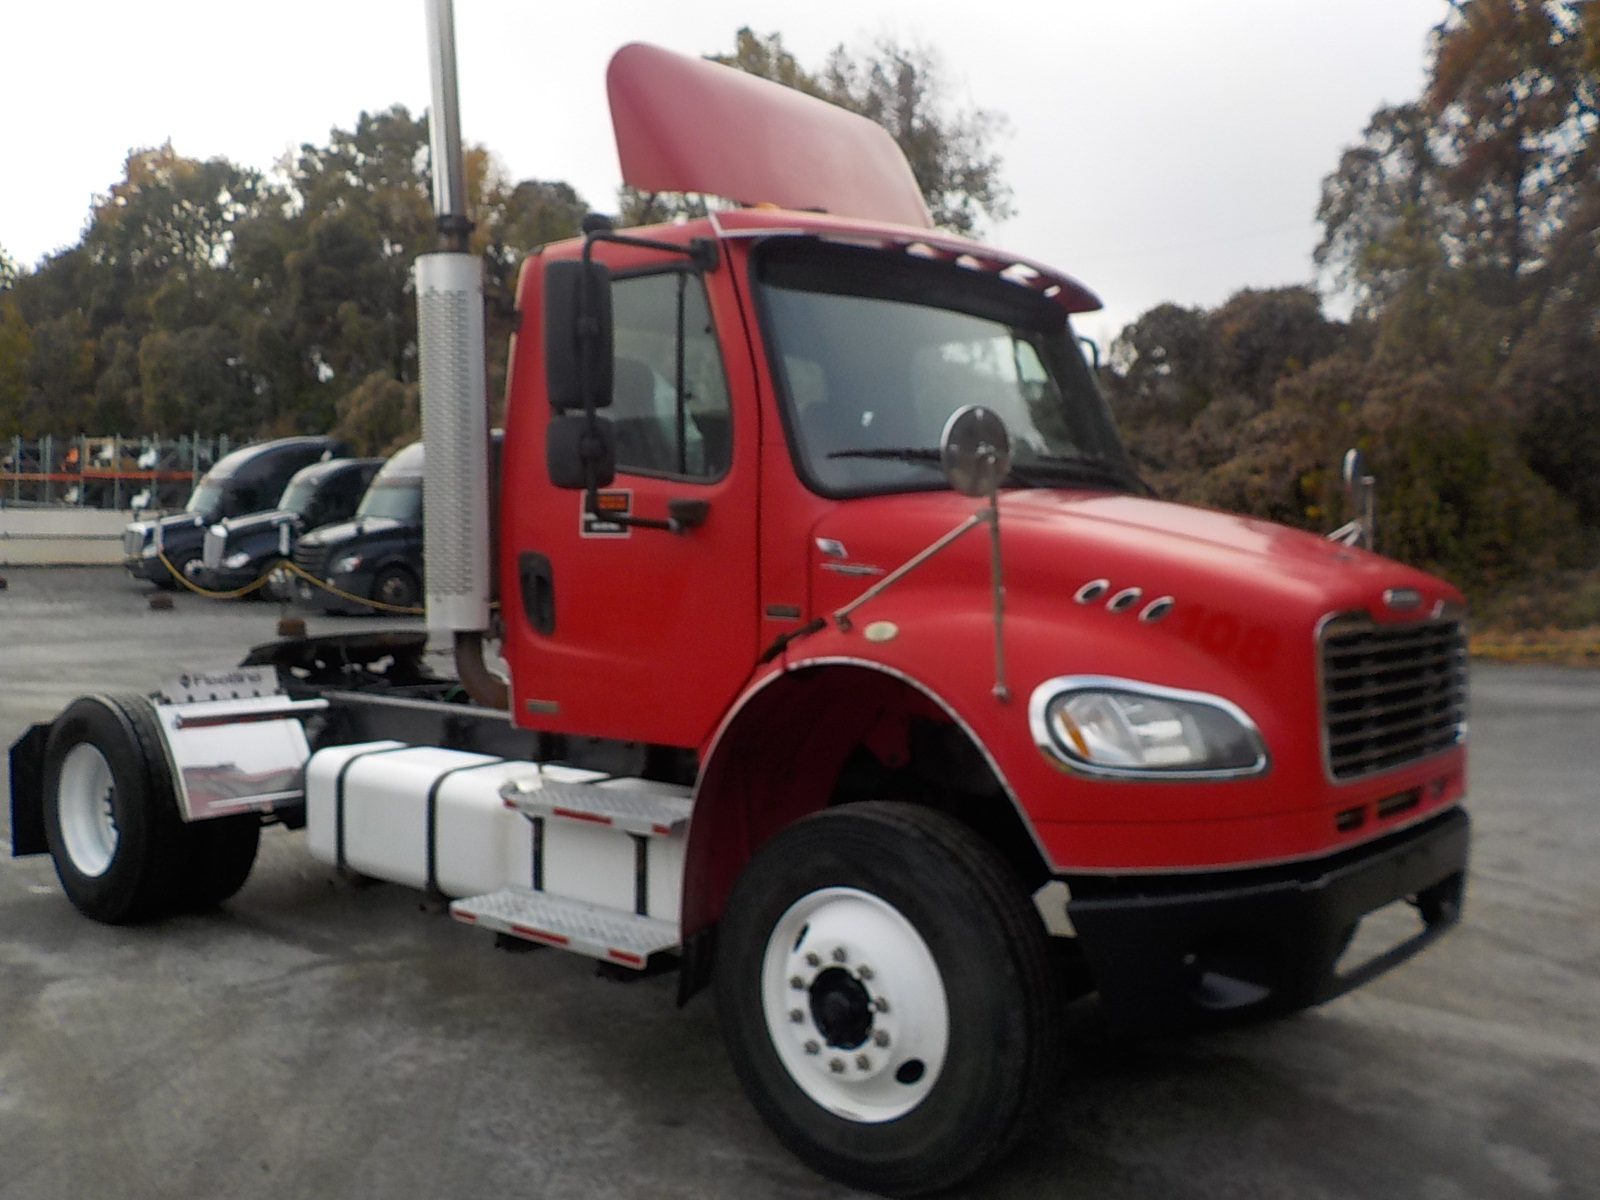 USED 2004 FREIGHTLINER UNKNOWN DAYCAB TRUCK #136190